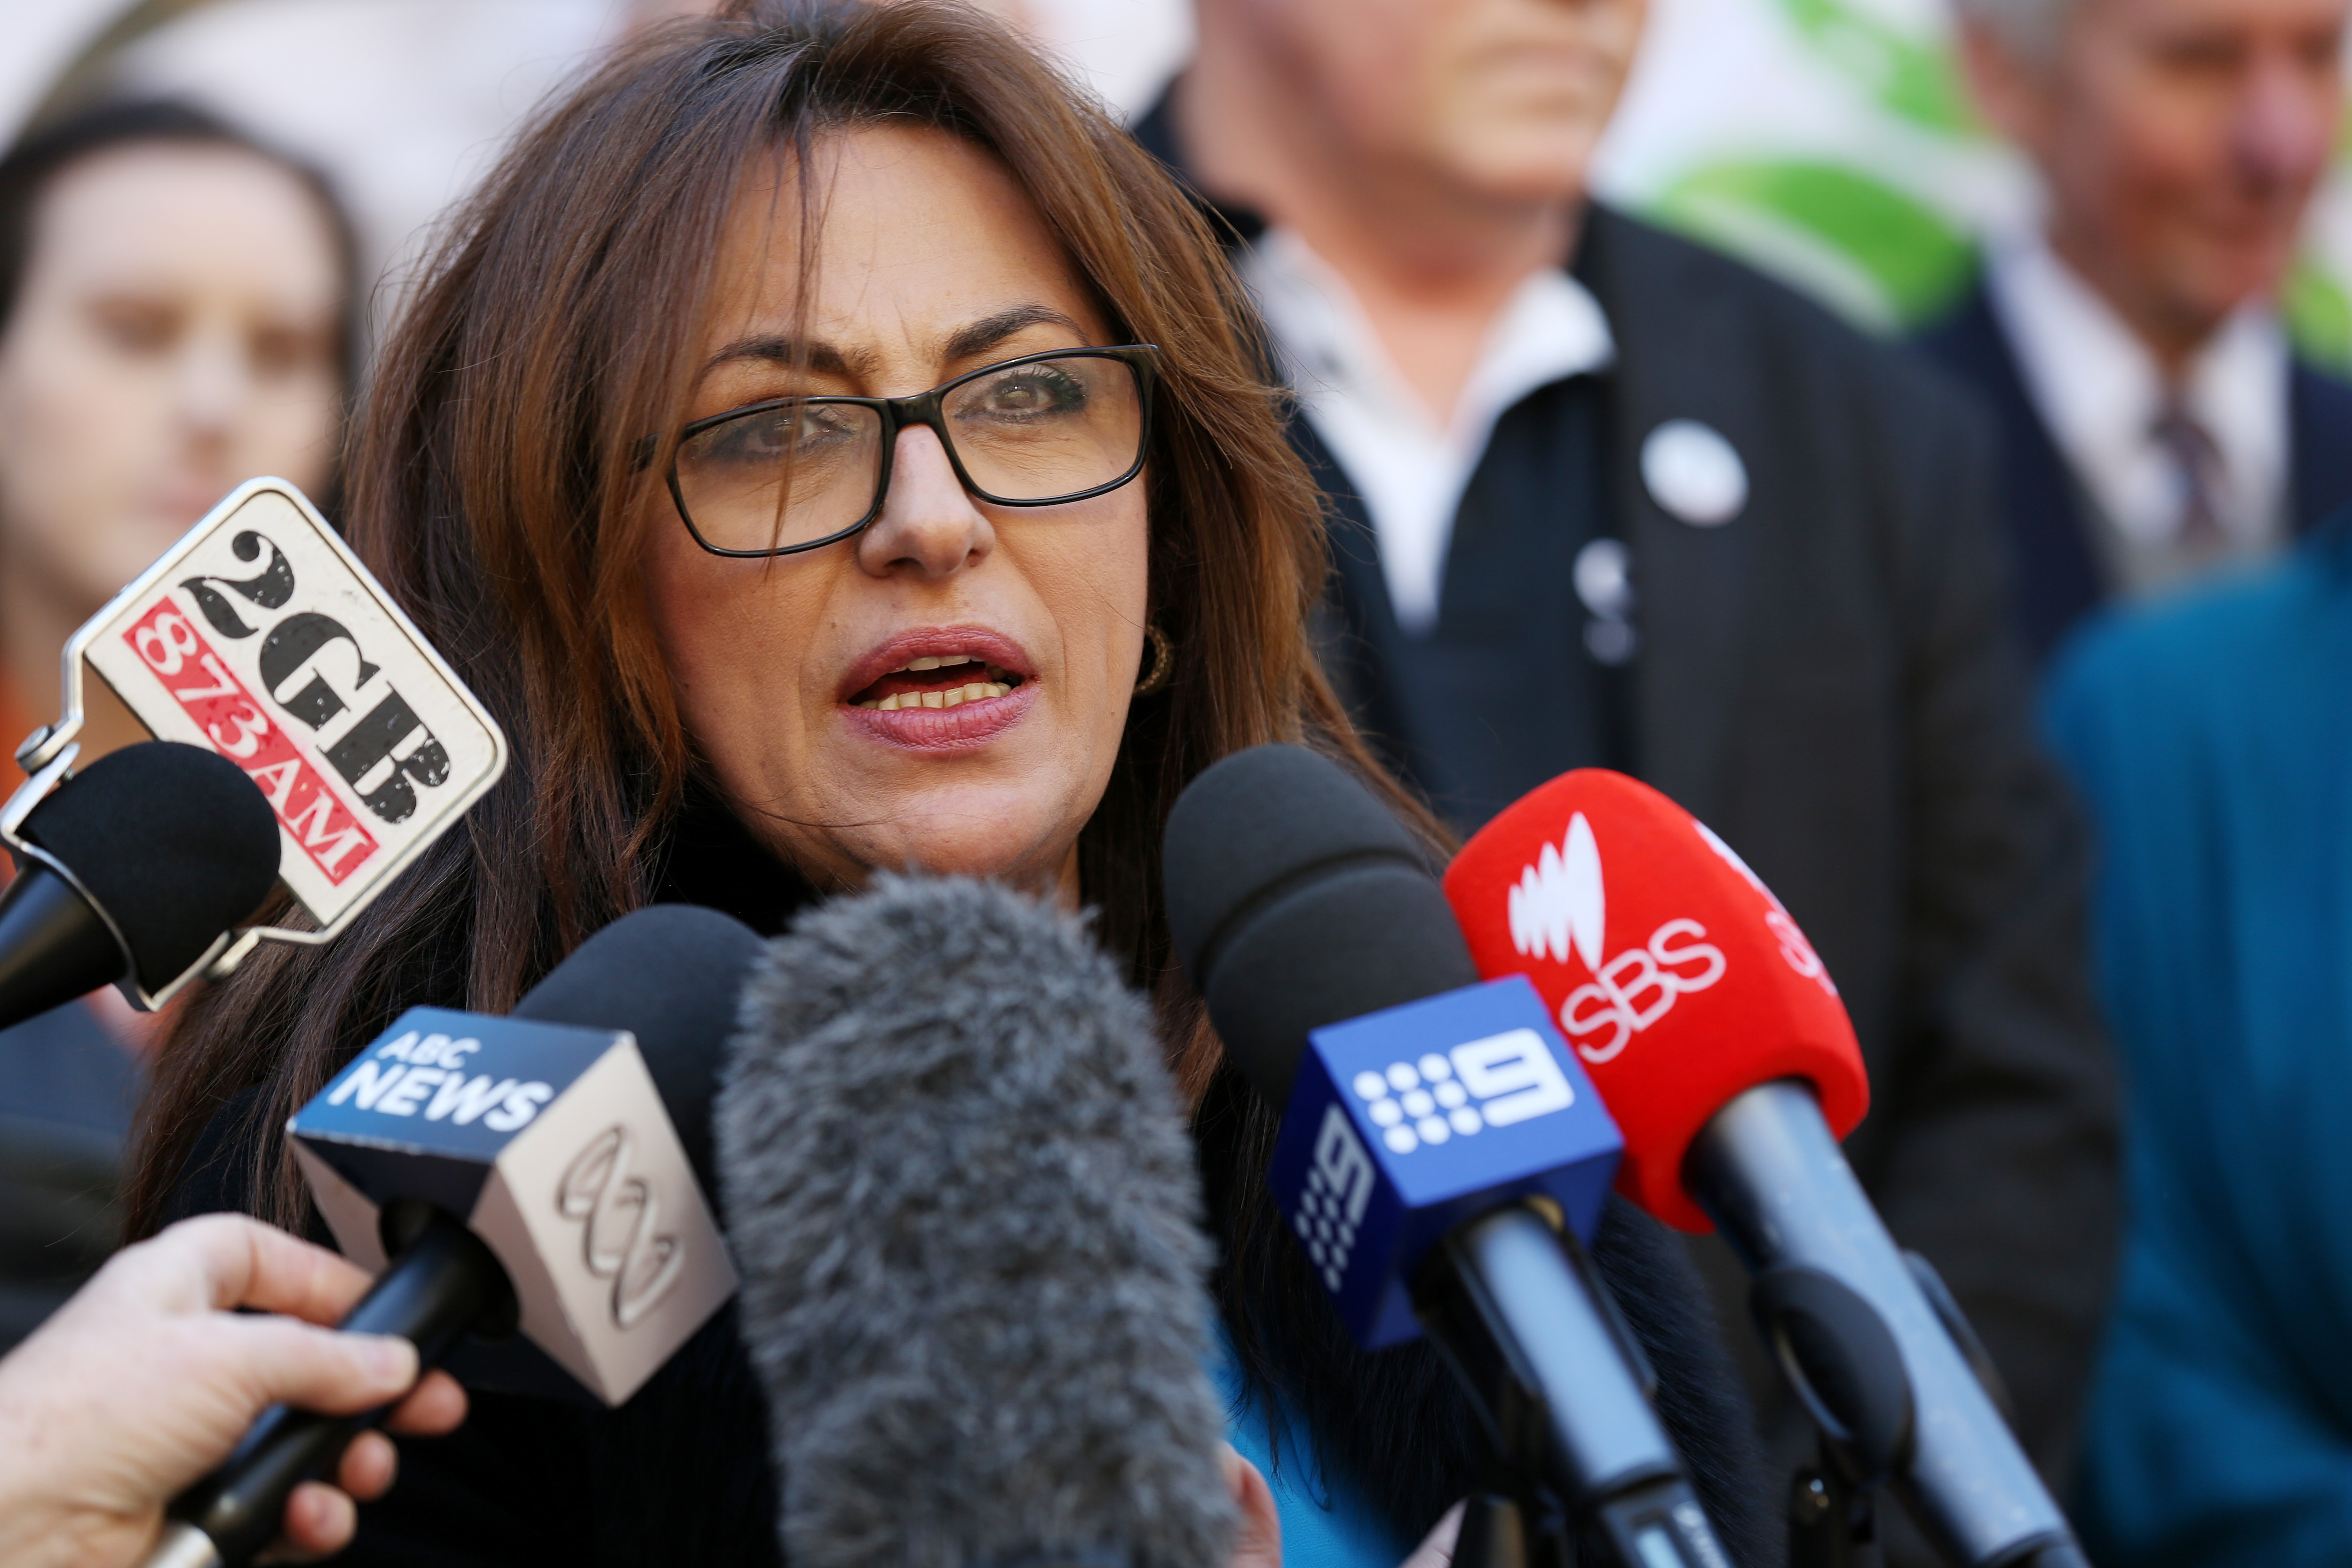 Arab Council of Australia CEO Randa Kattan responds to the Prime Minister's decision to abandon plans to repeal Section 18C of the Racial Discrimination Act in Sydney, Wednesday, Aug 6, 2014. (AAP Image/Nikki Short) NO ARCHIVING